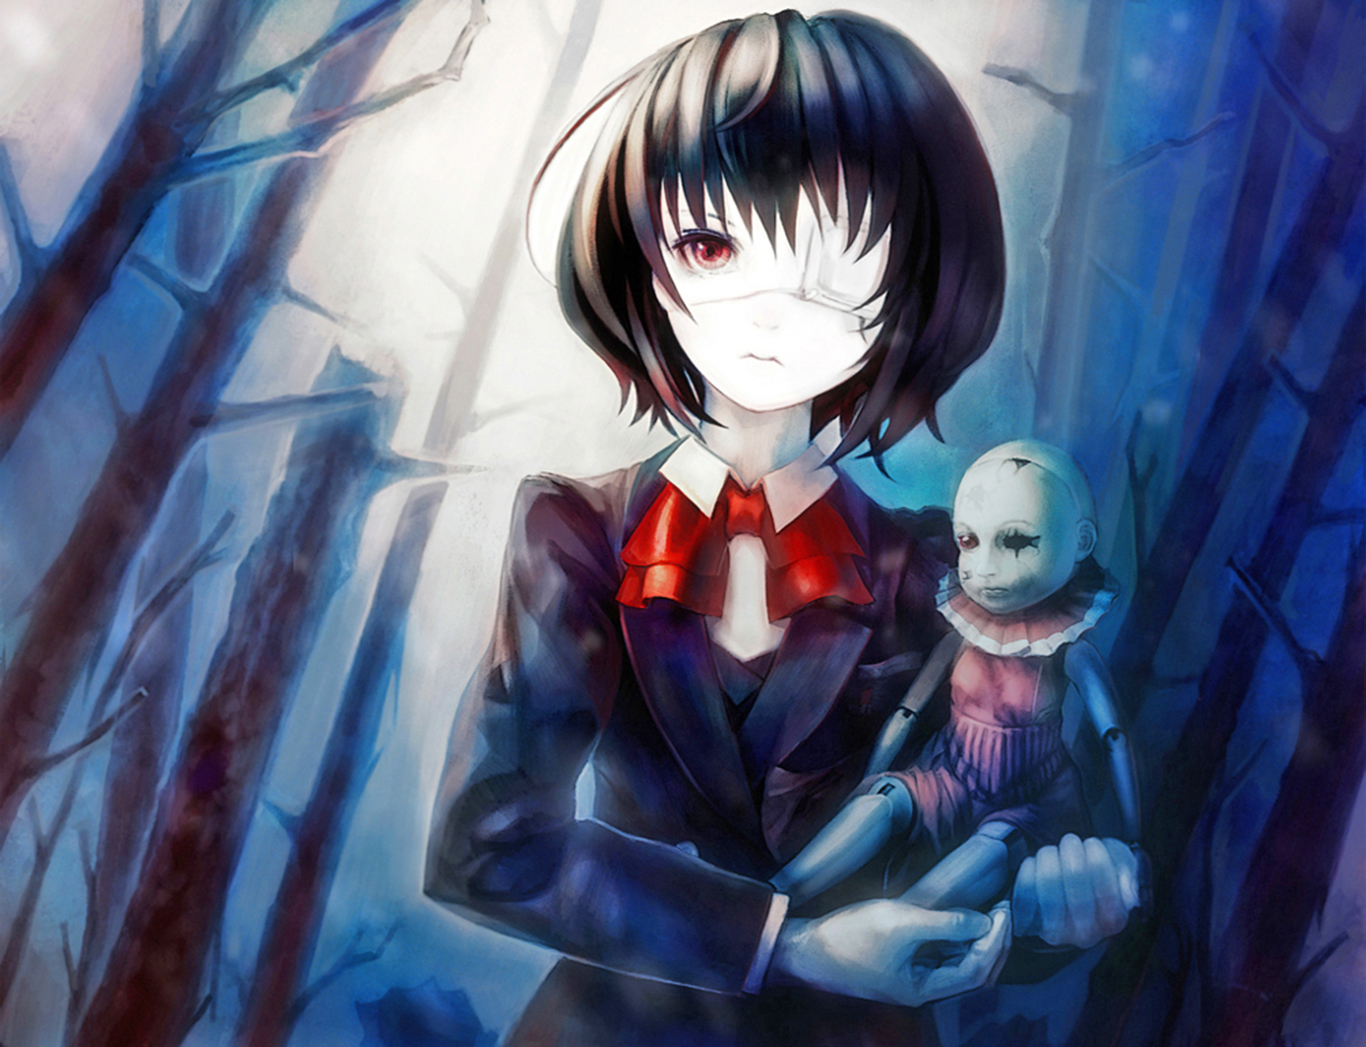 Iphone 5 Wallpaper Cute Pinterest Mei Misaki Wallpaper And Background Image 1366x1047 Id